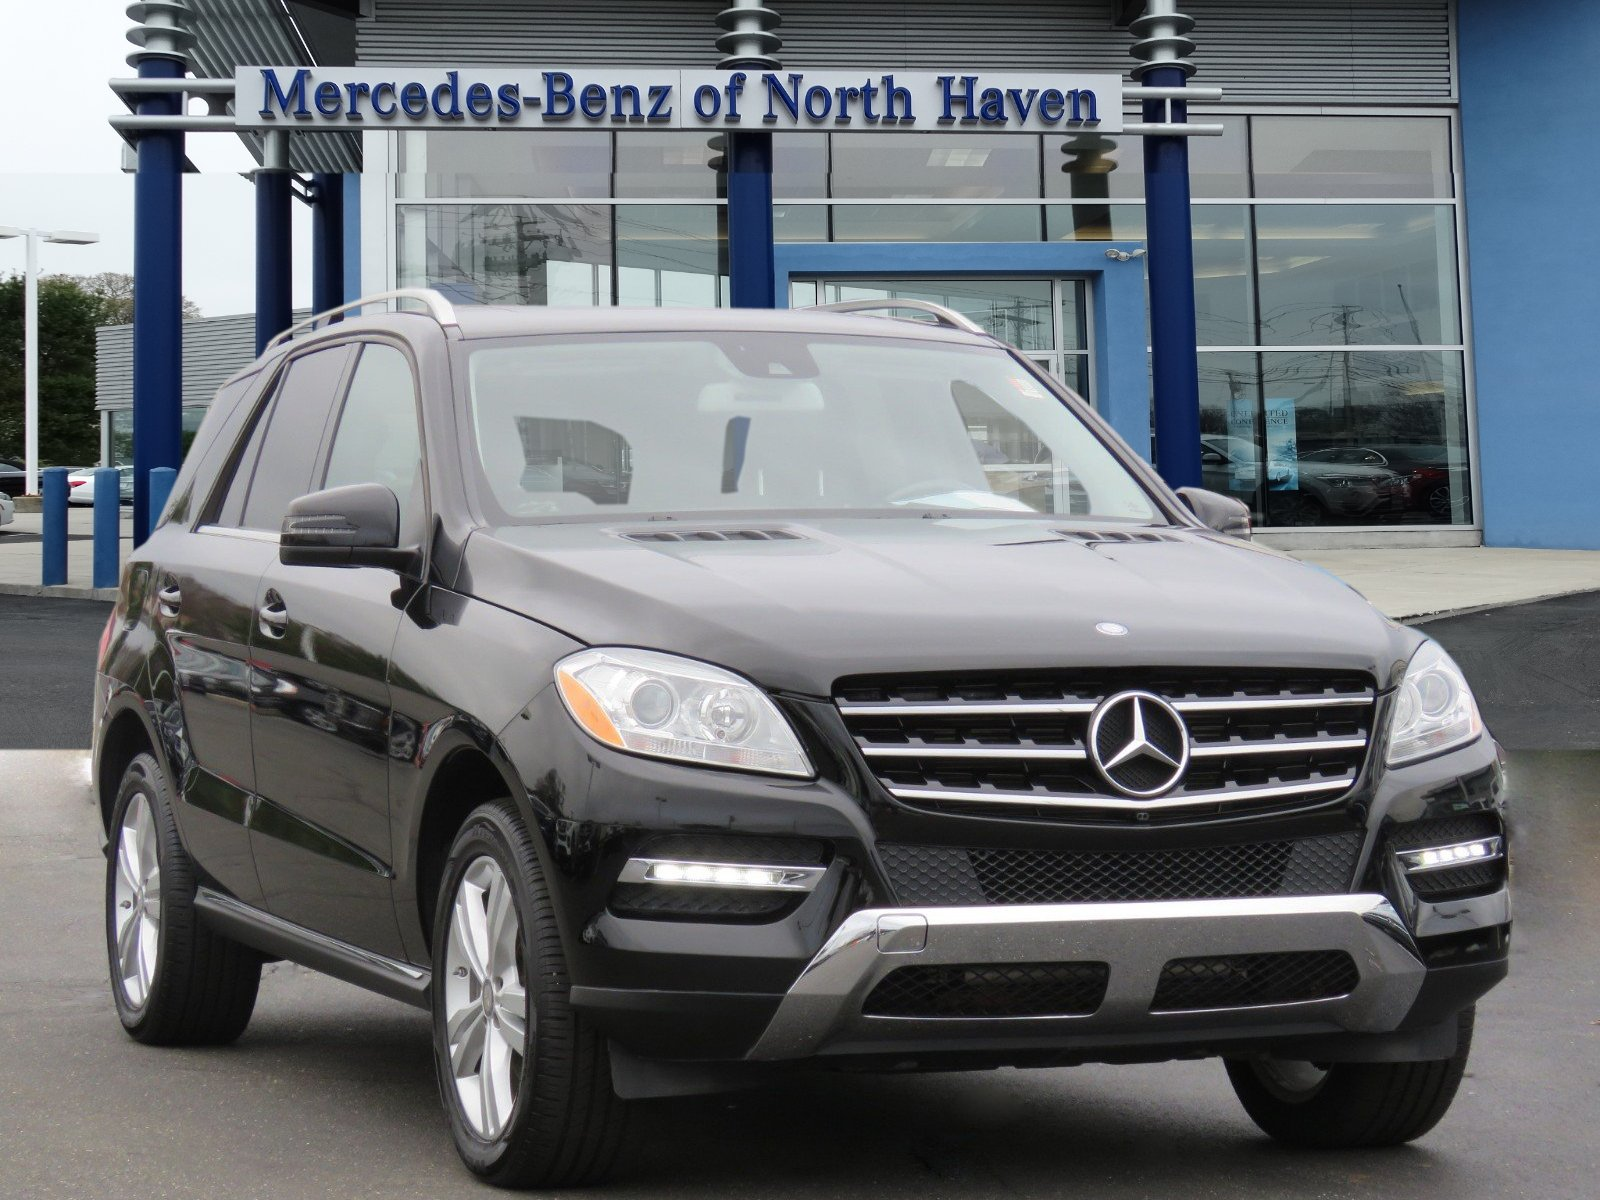 Pre Owned 2015 Mercedes Benz M Class ML 350 SUV in North Haven